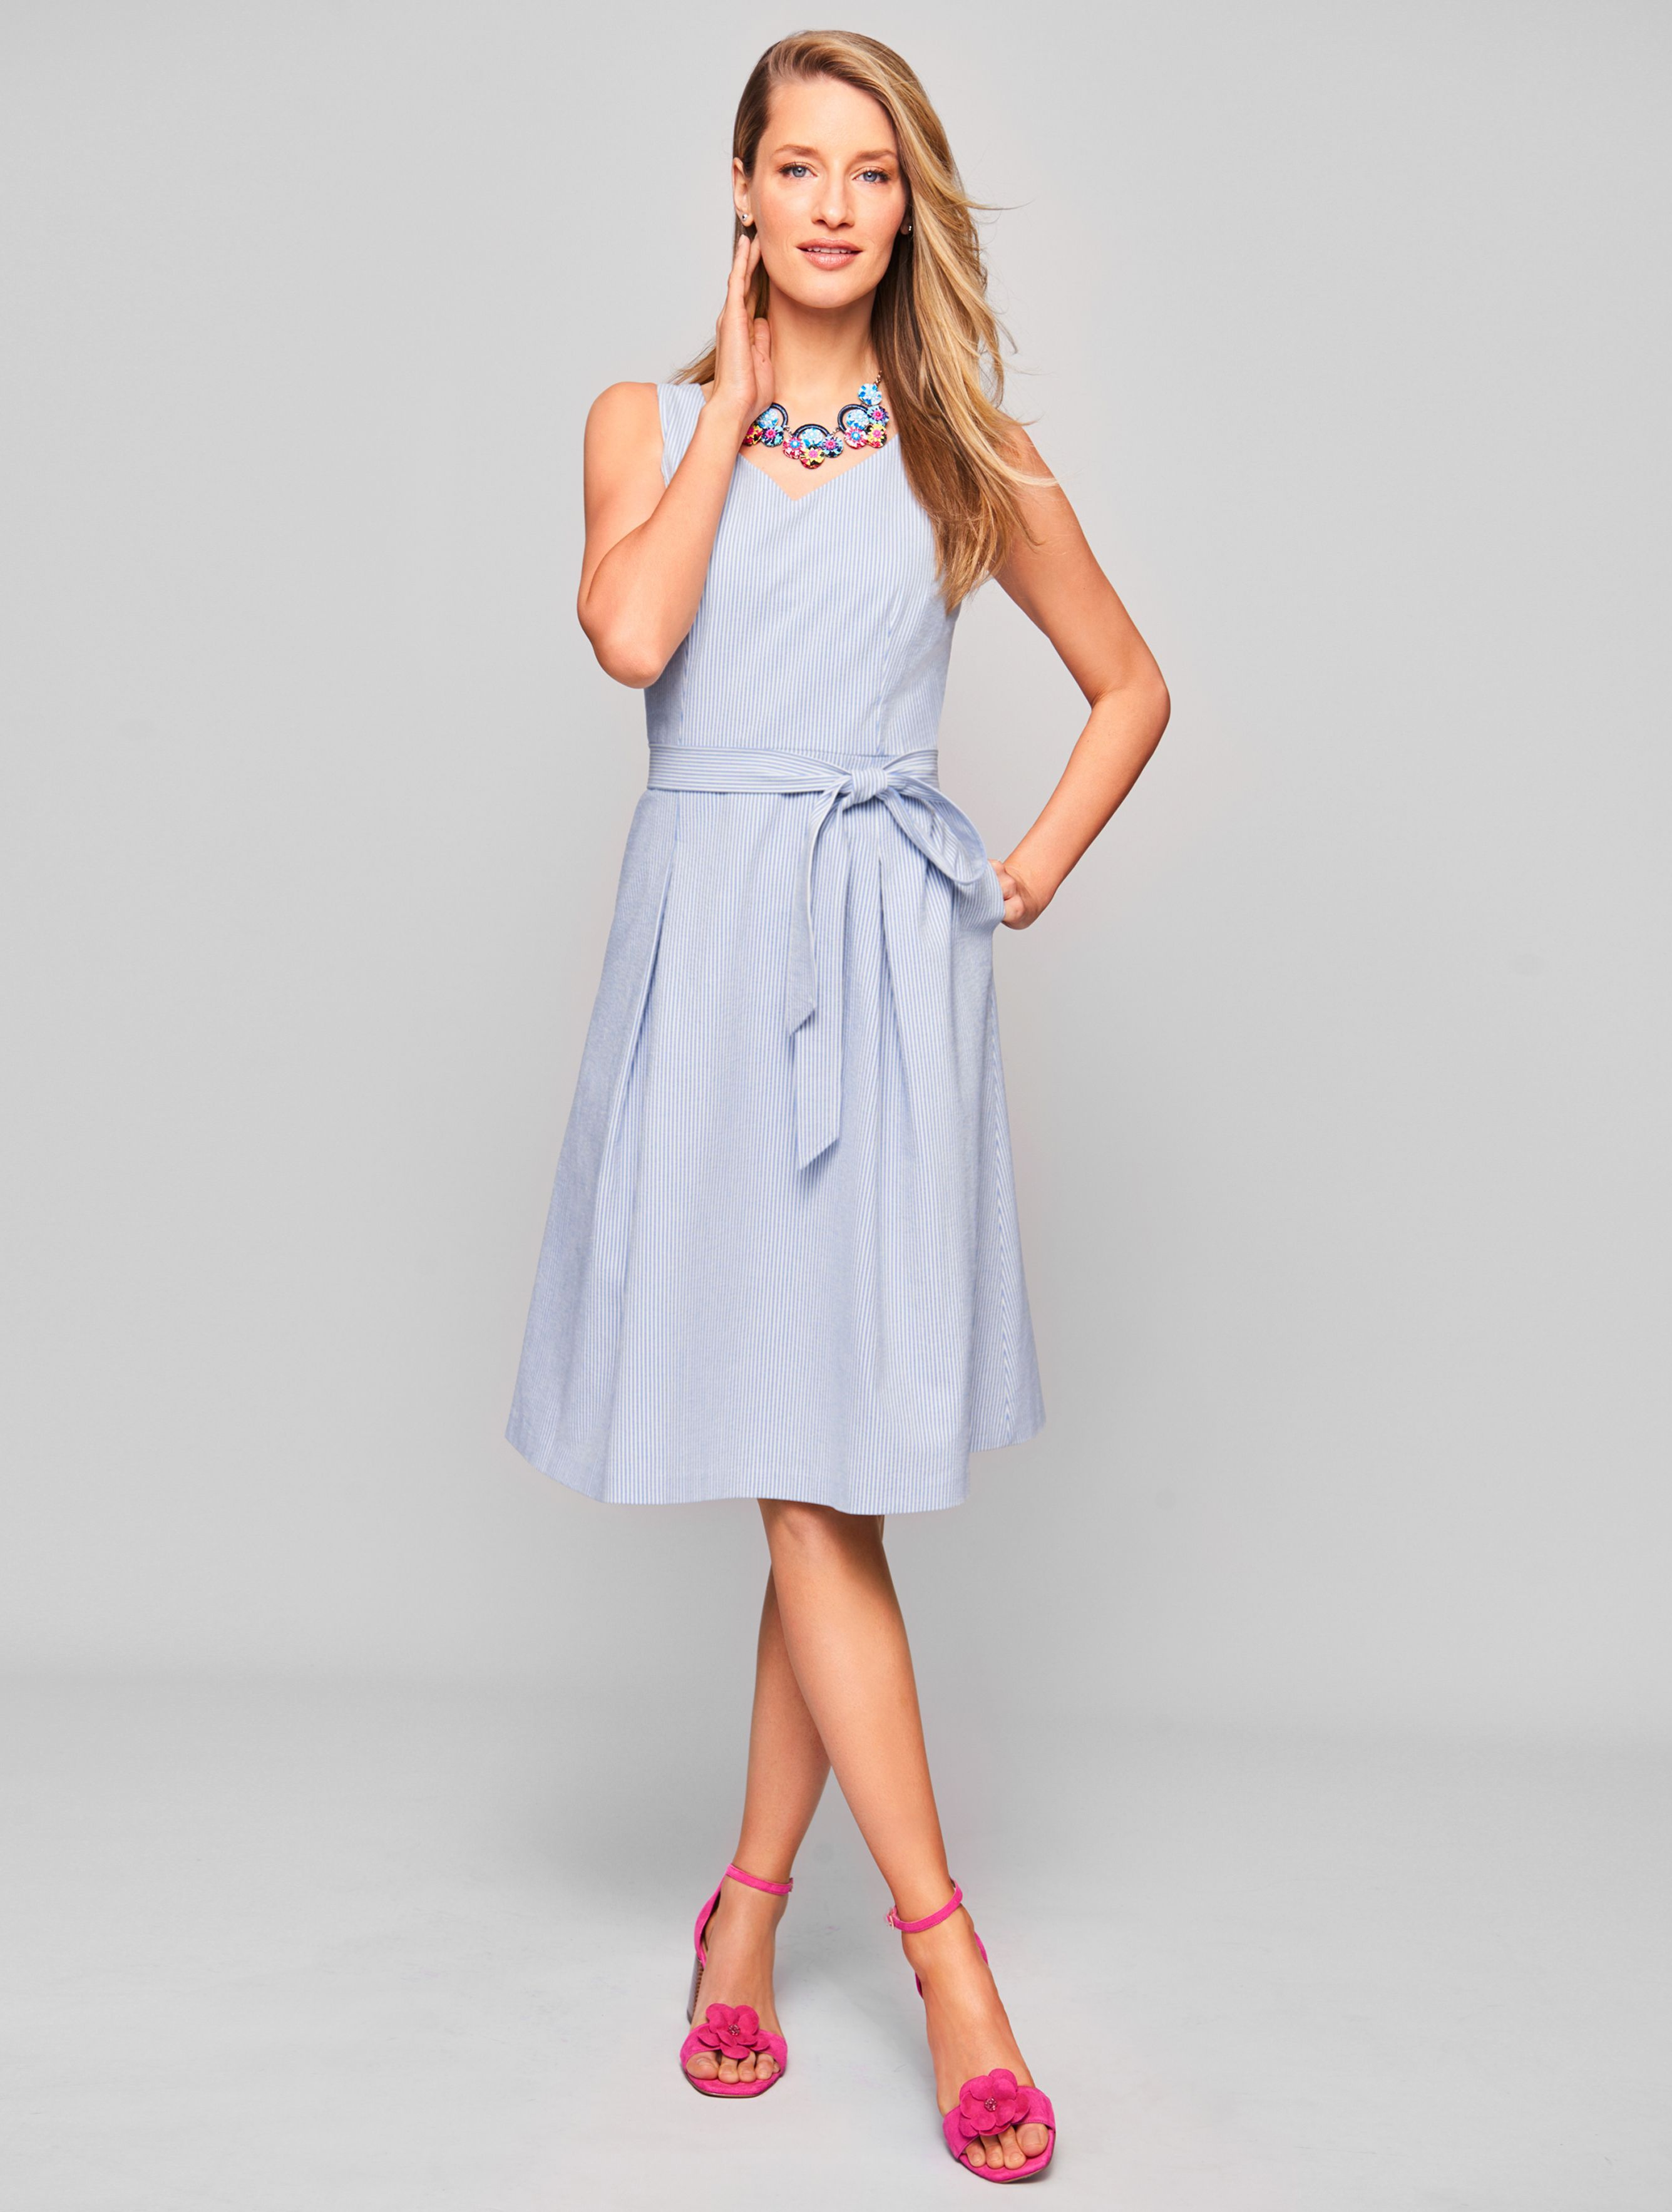 3cae9f63786 Pair with pumps and the coordinating blazer for work. Wear with sandals and  a dress shrug while dining al fresco.